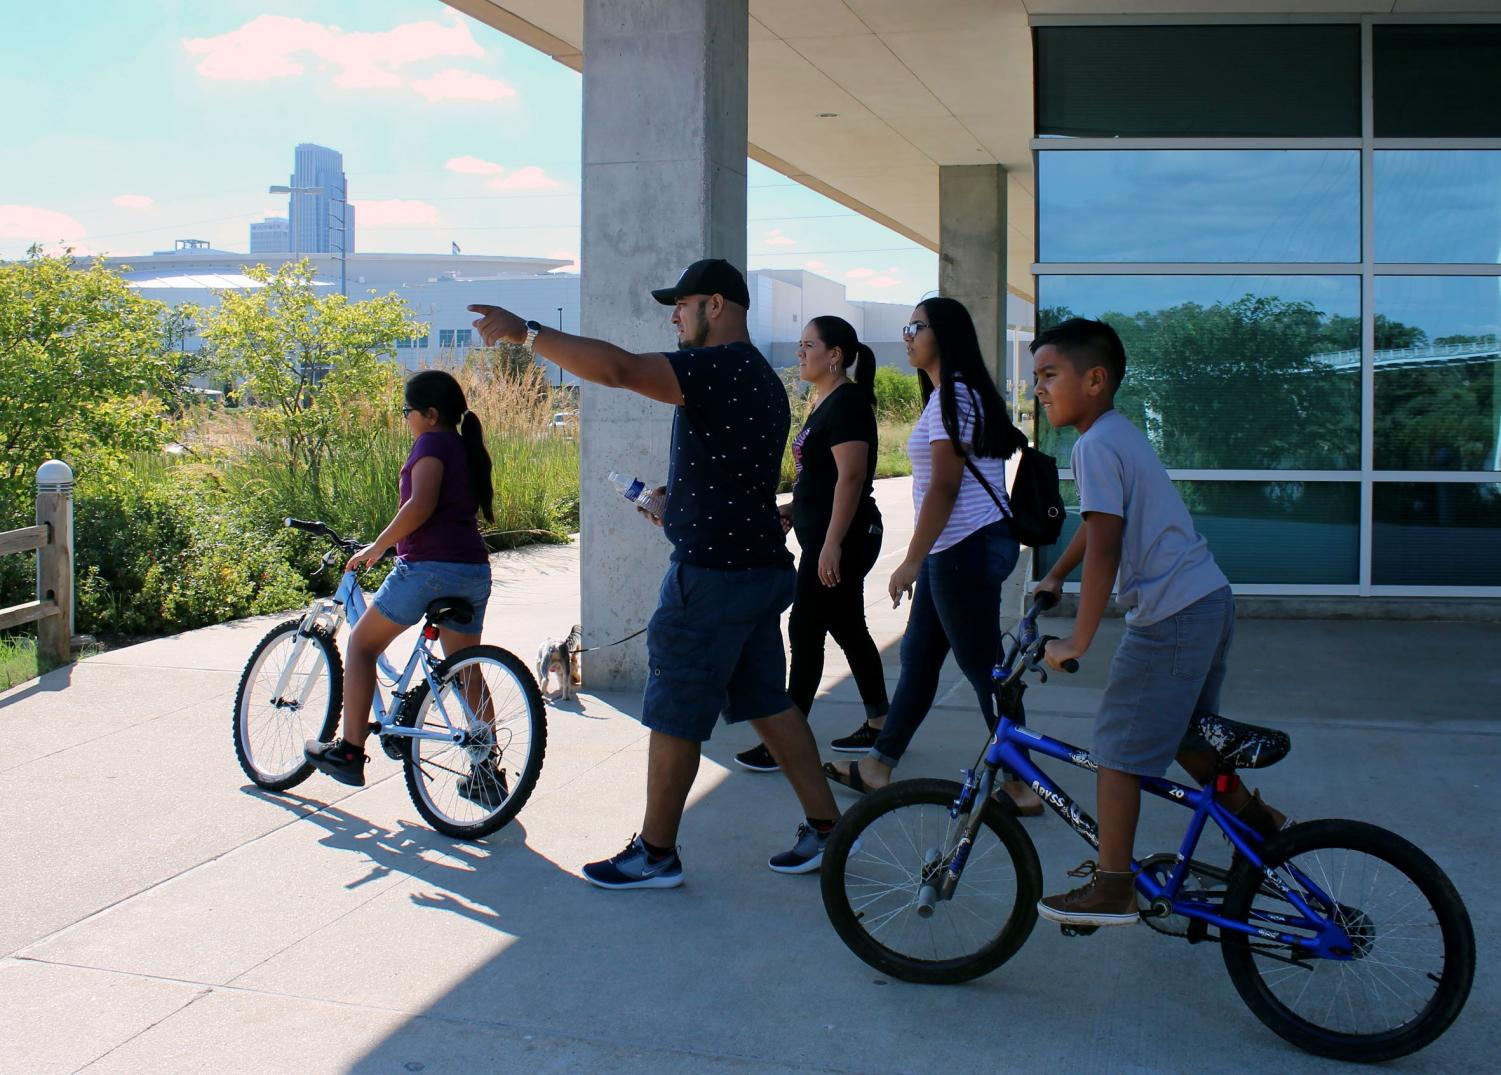 Kasandra Fuertes and her family walk downtown near the Bob Kerrey Pedestrian Bridge on Sept. 9, 2018, spending quality time together. Her father, Jose Fuertes, pointed at the water that flooded the river banks. Photo by Joseline Albeño